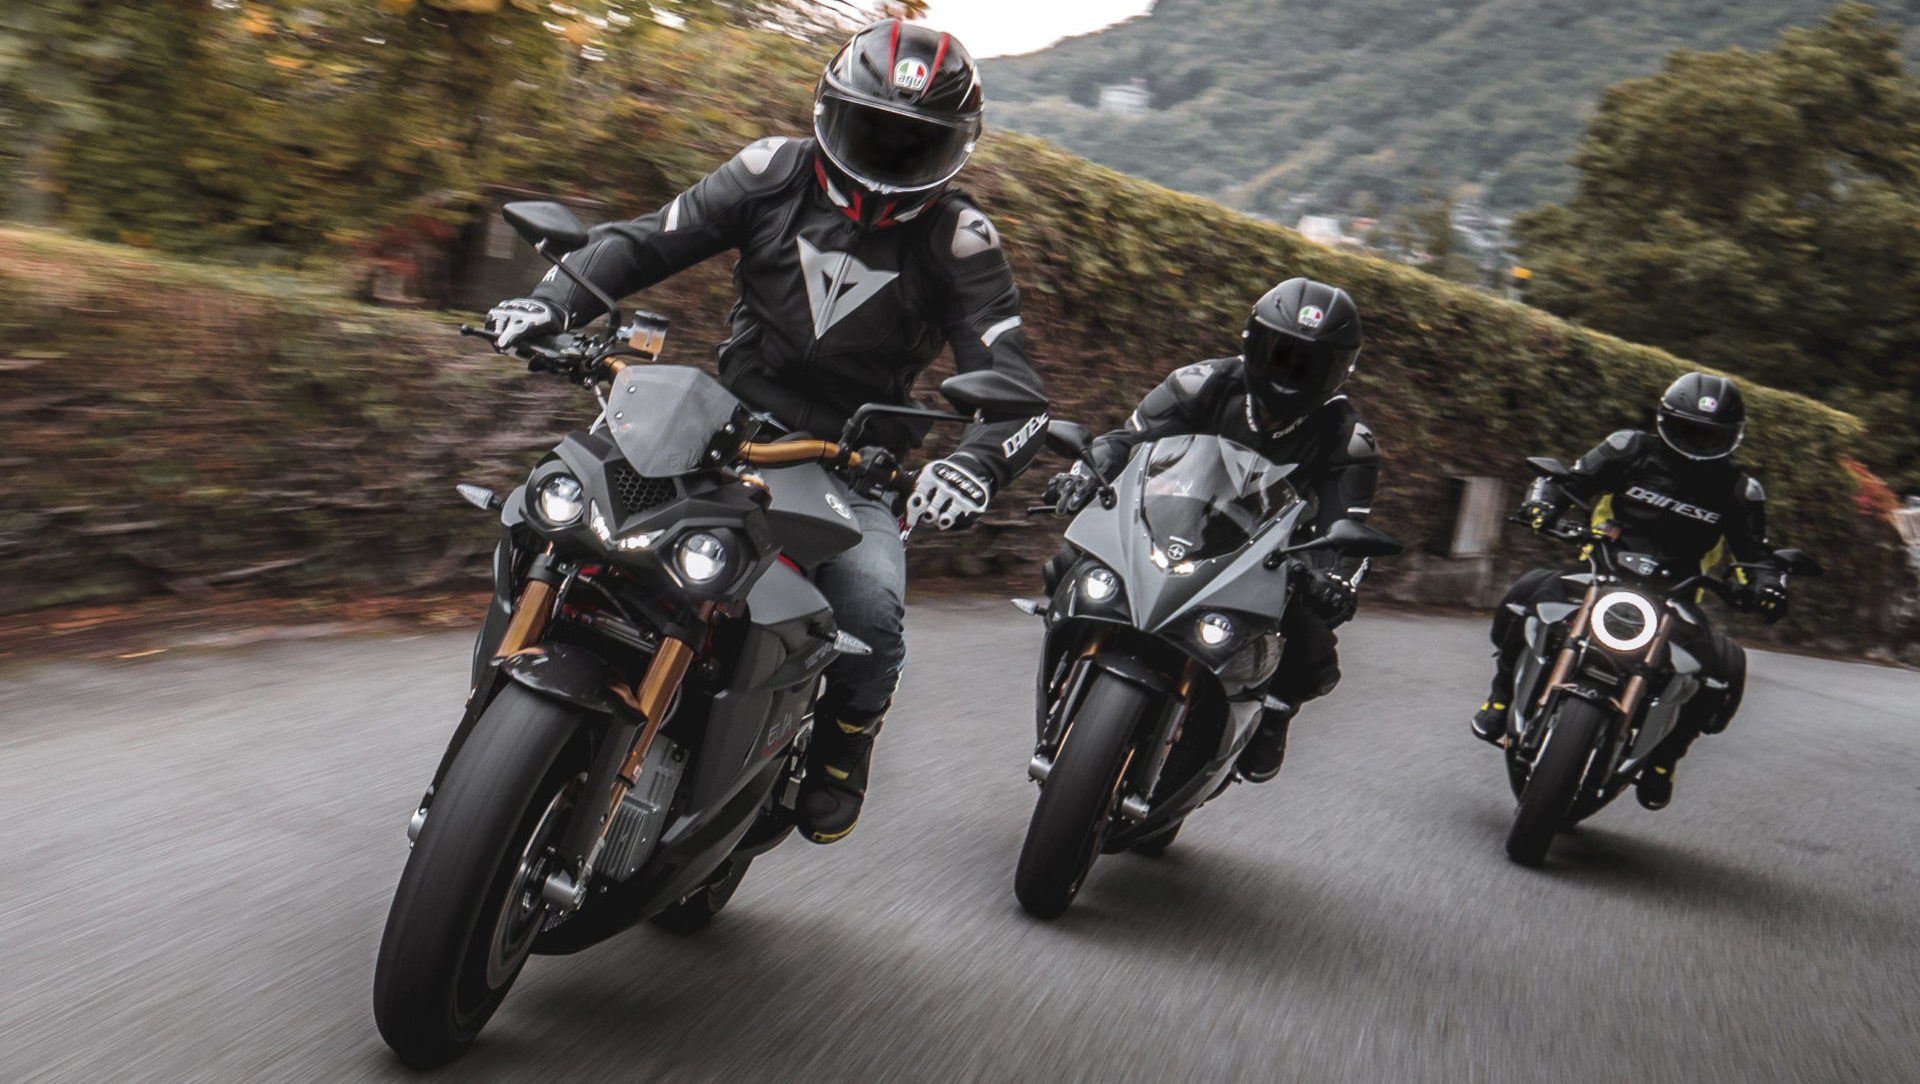 International Motorcycle Show 2020.Energica Bringing Its 2020 Electric Motorcycles News To Ims